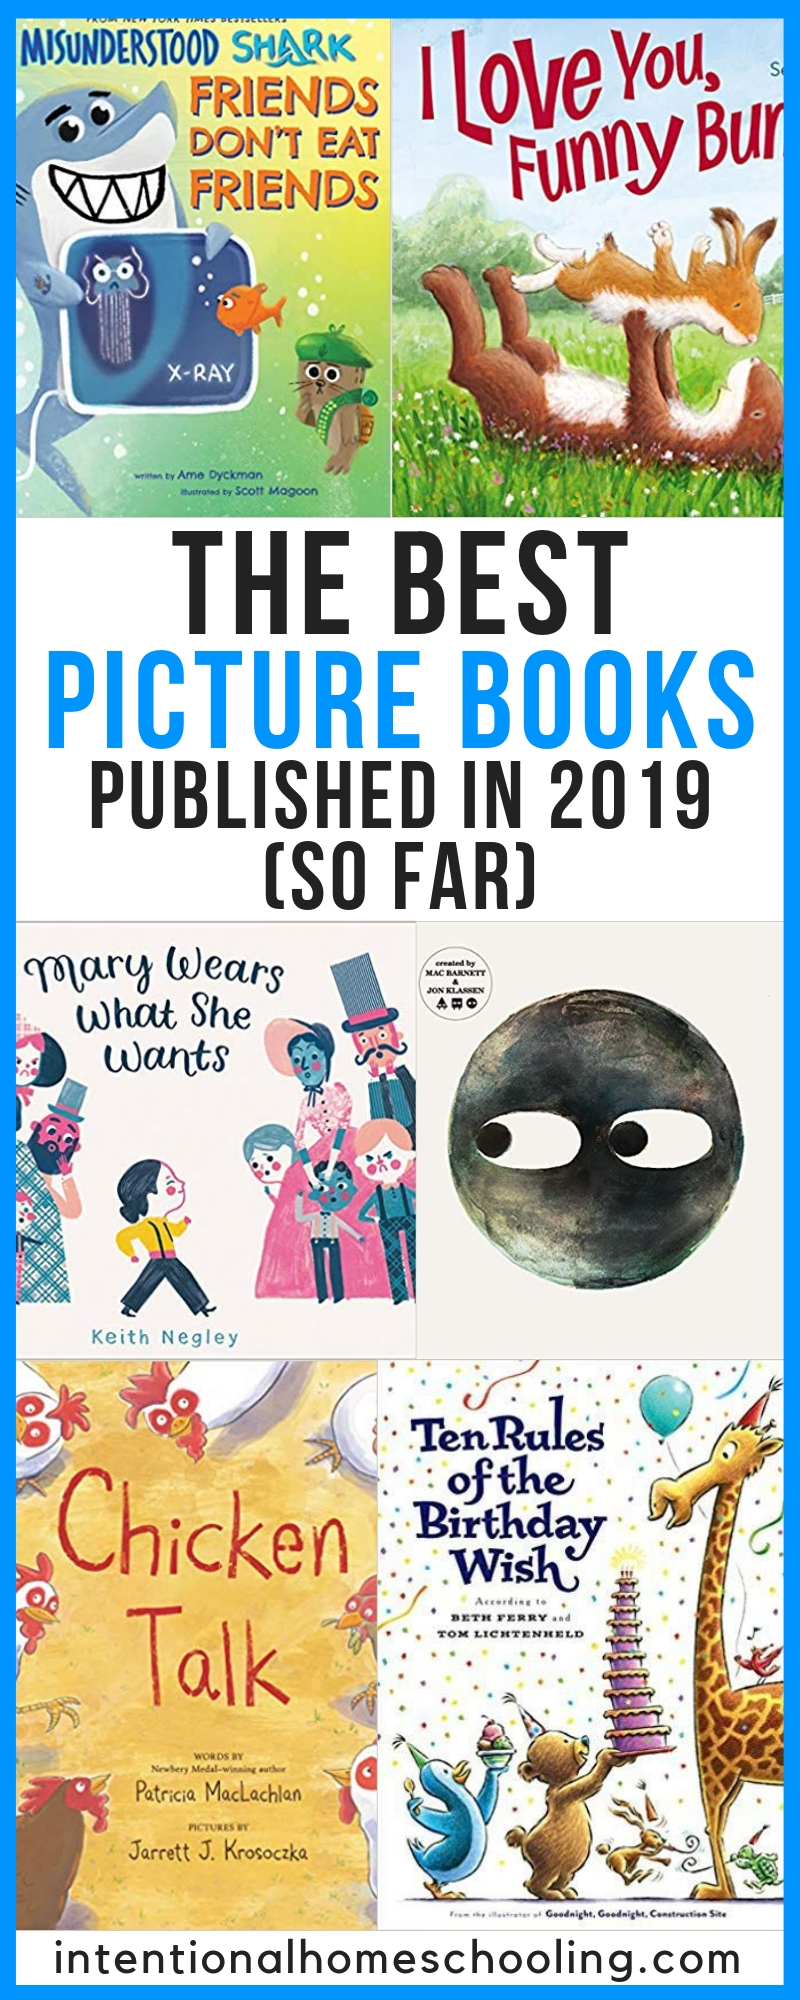 The Best Picture Books Published in 2019 (so far)